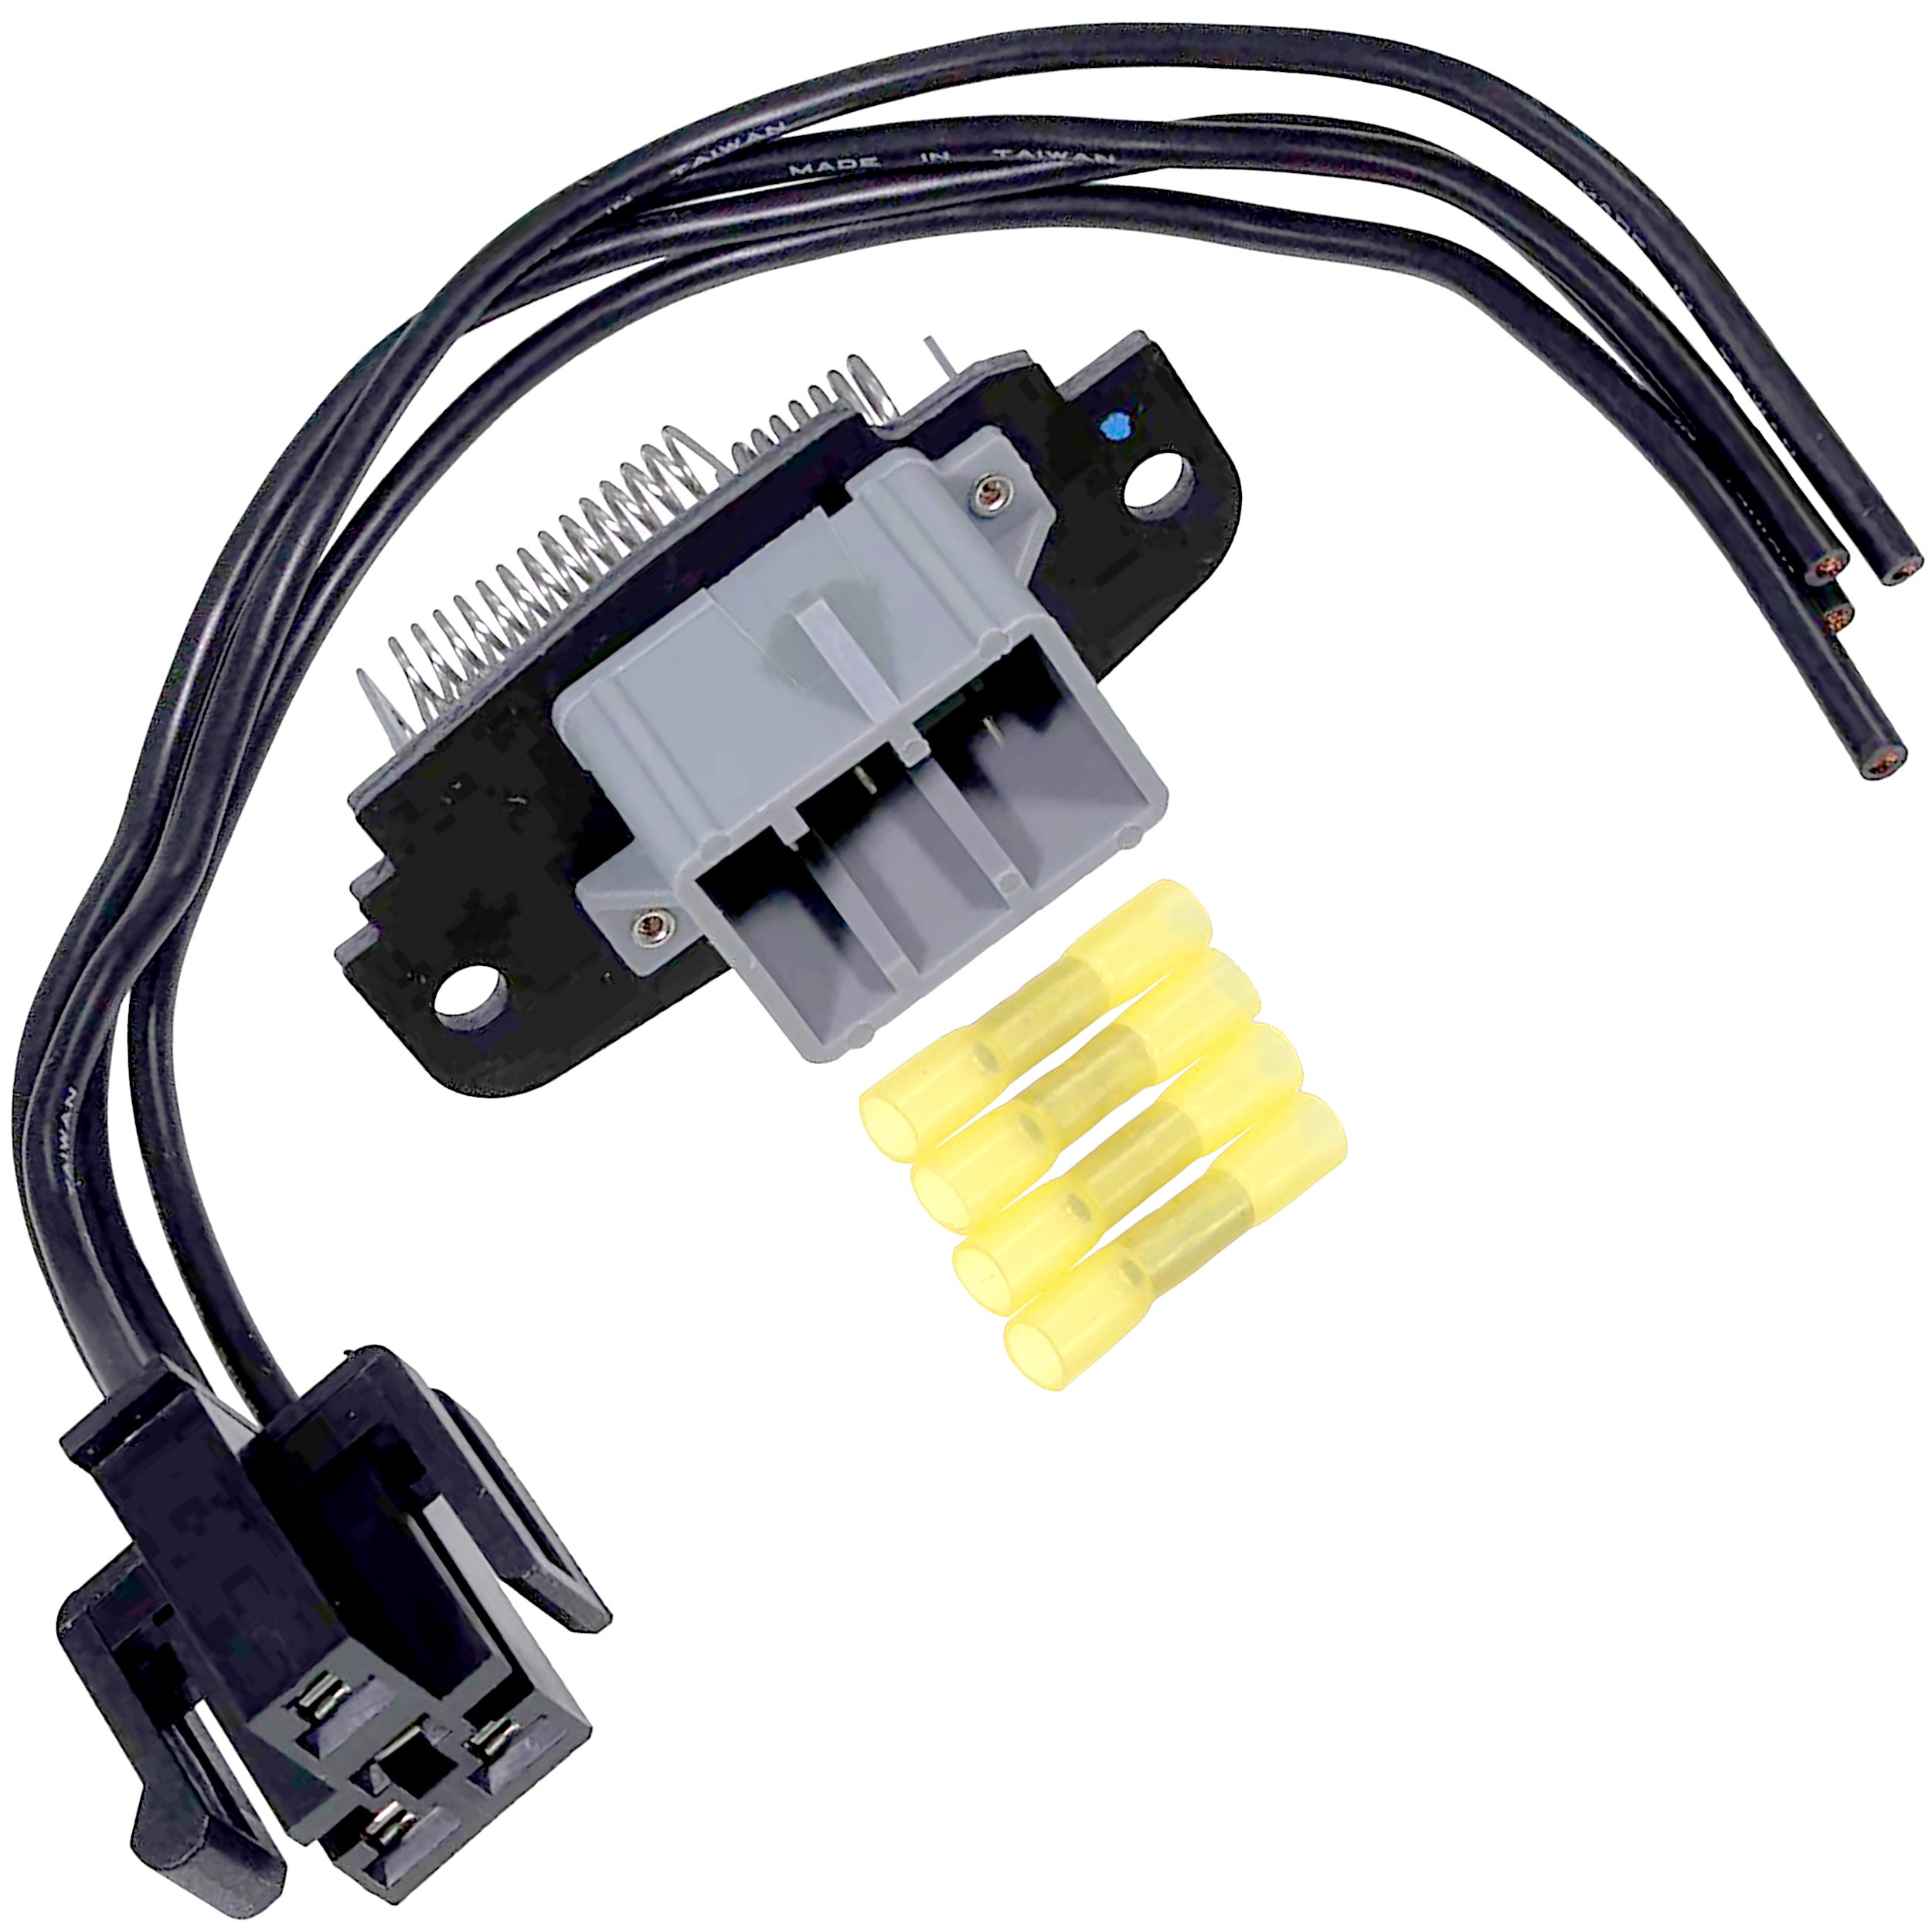 Wiring Harness Pigtail Details About Apdty 084522 Blower Motor Speed Control Resistor W Wire Brand New Includes Connector Fits 1995 2003 Ford Explorer Front Ac Heater